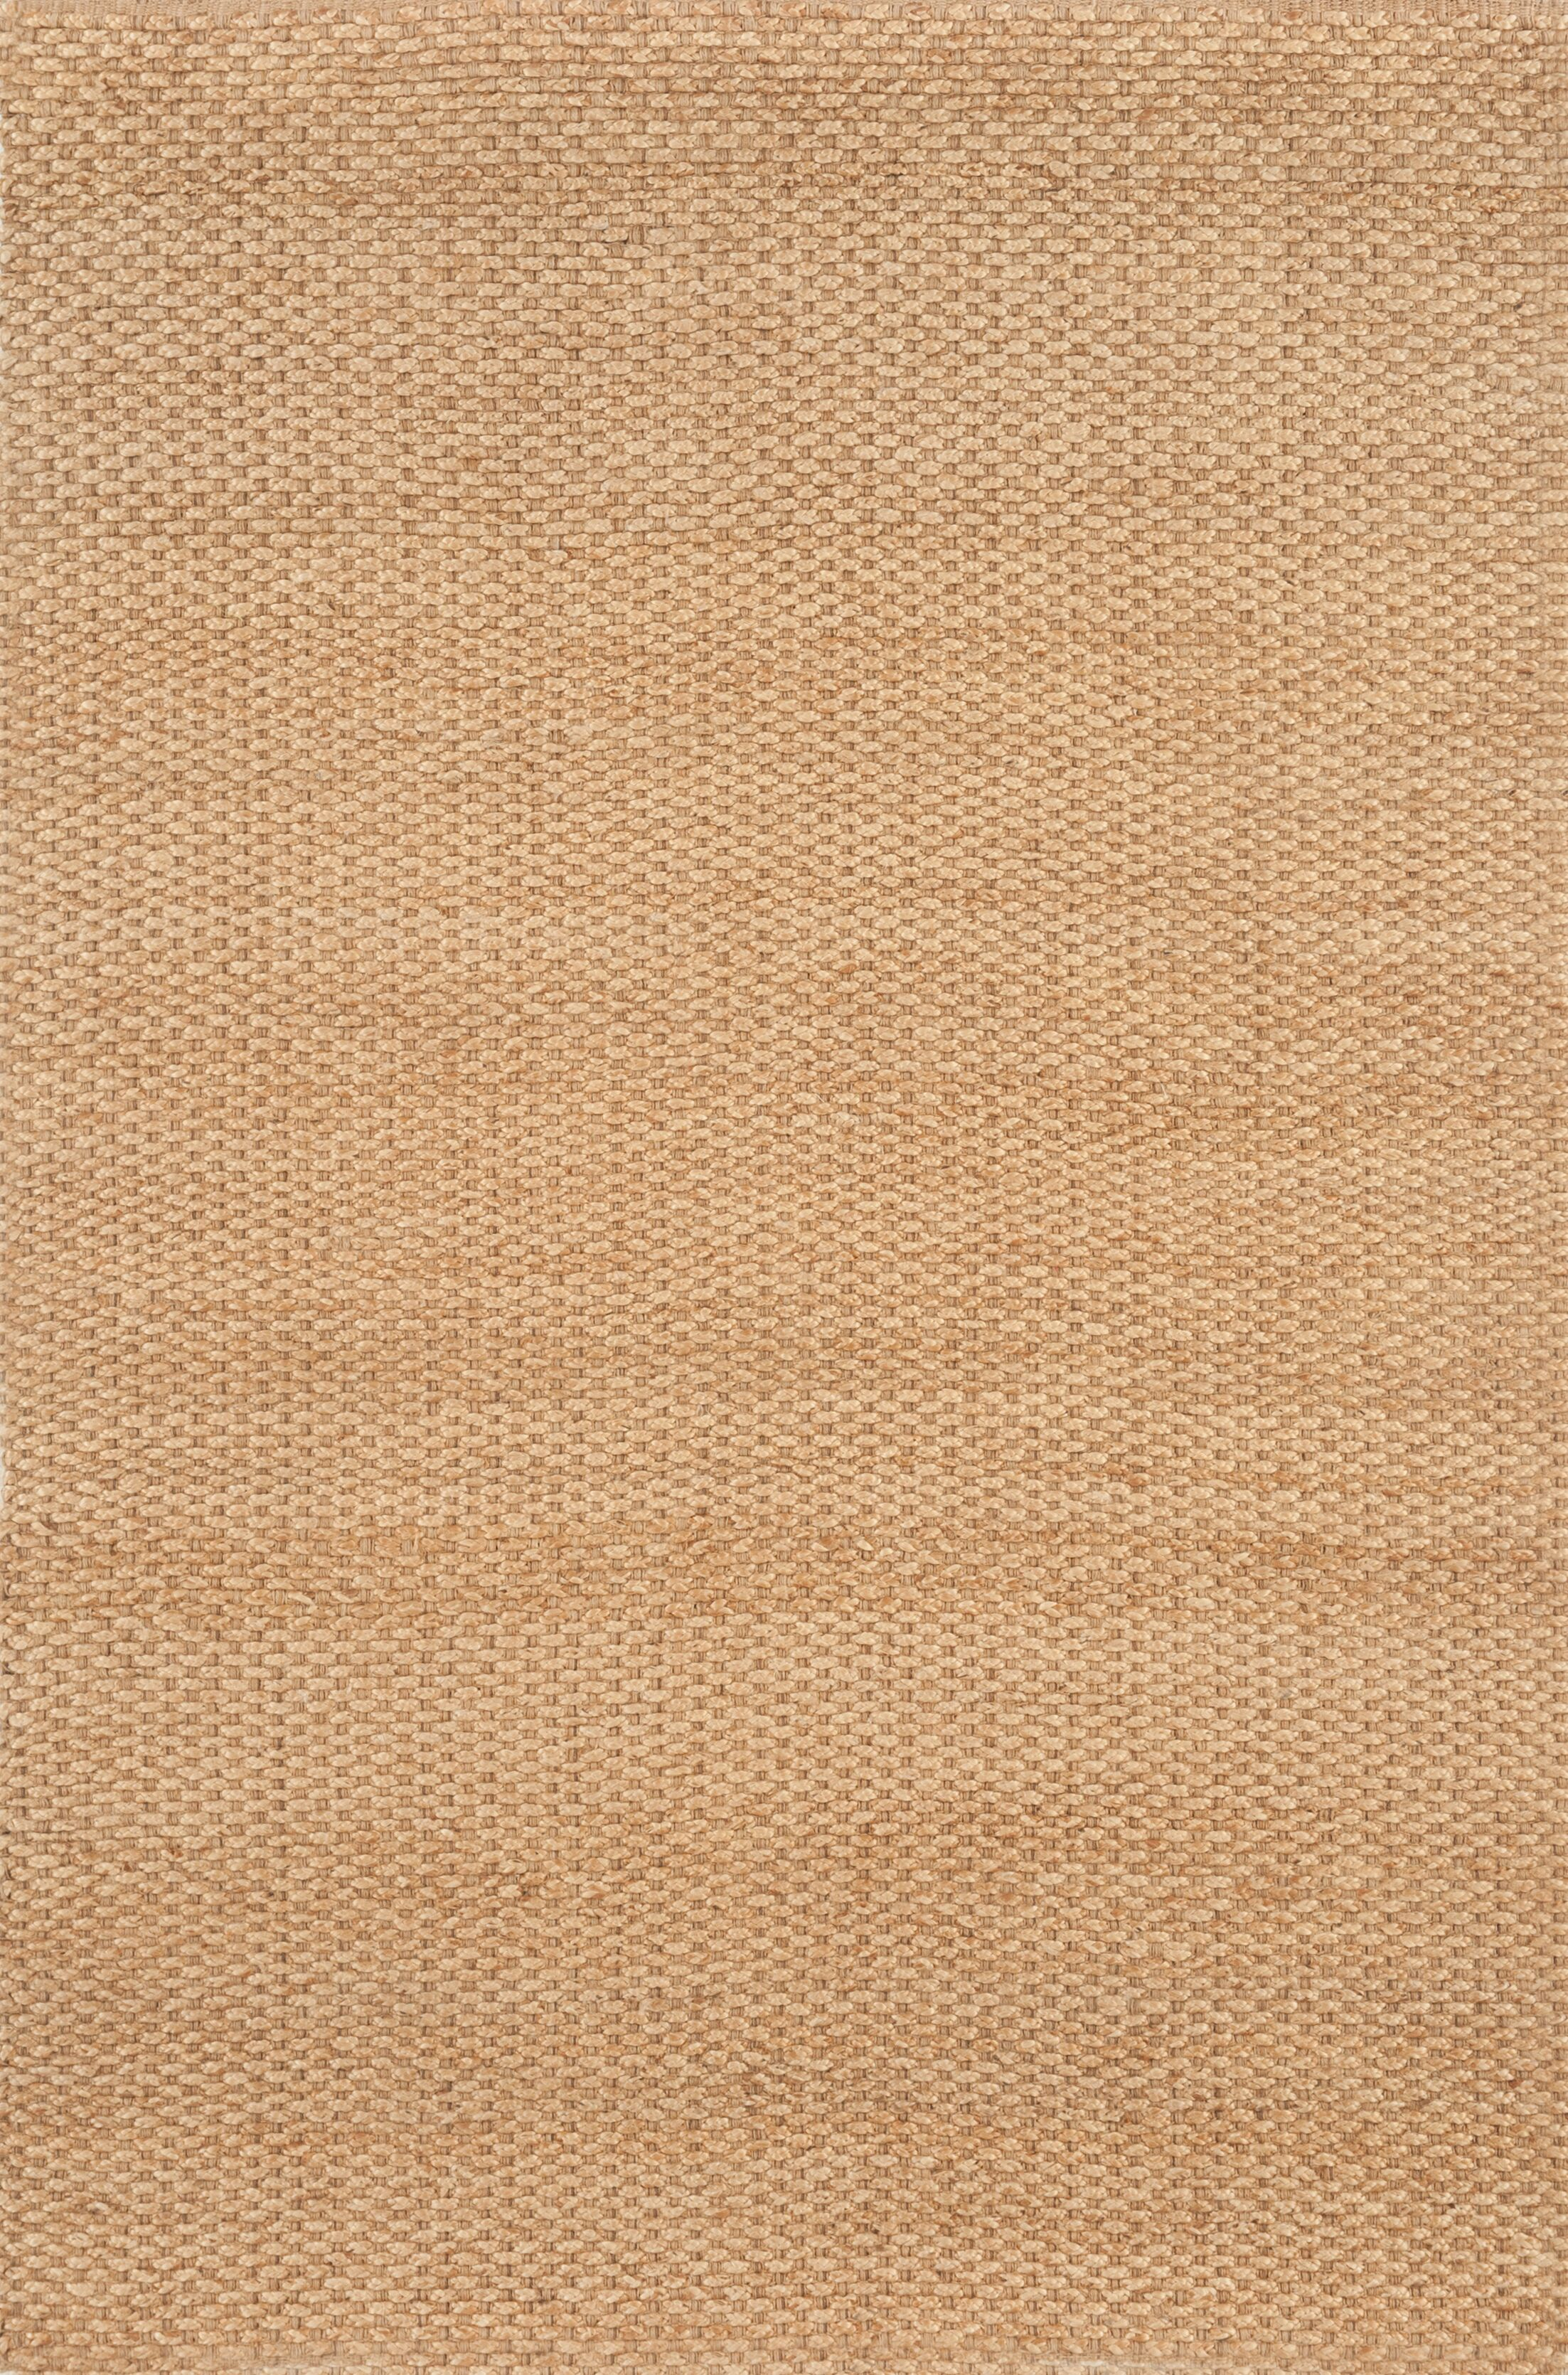 Hand-Woven Natural Area Rug Rug Size: Rectangle 3'6